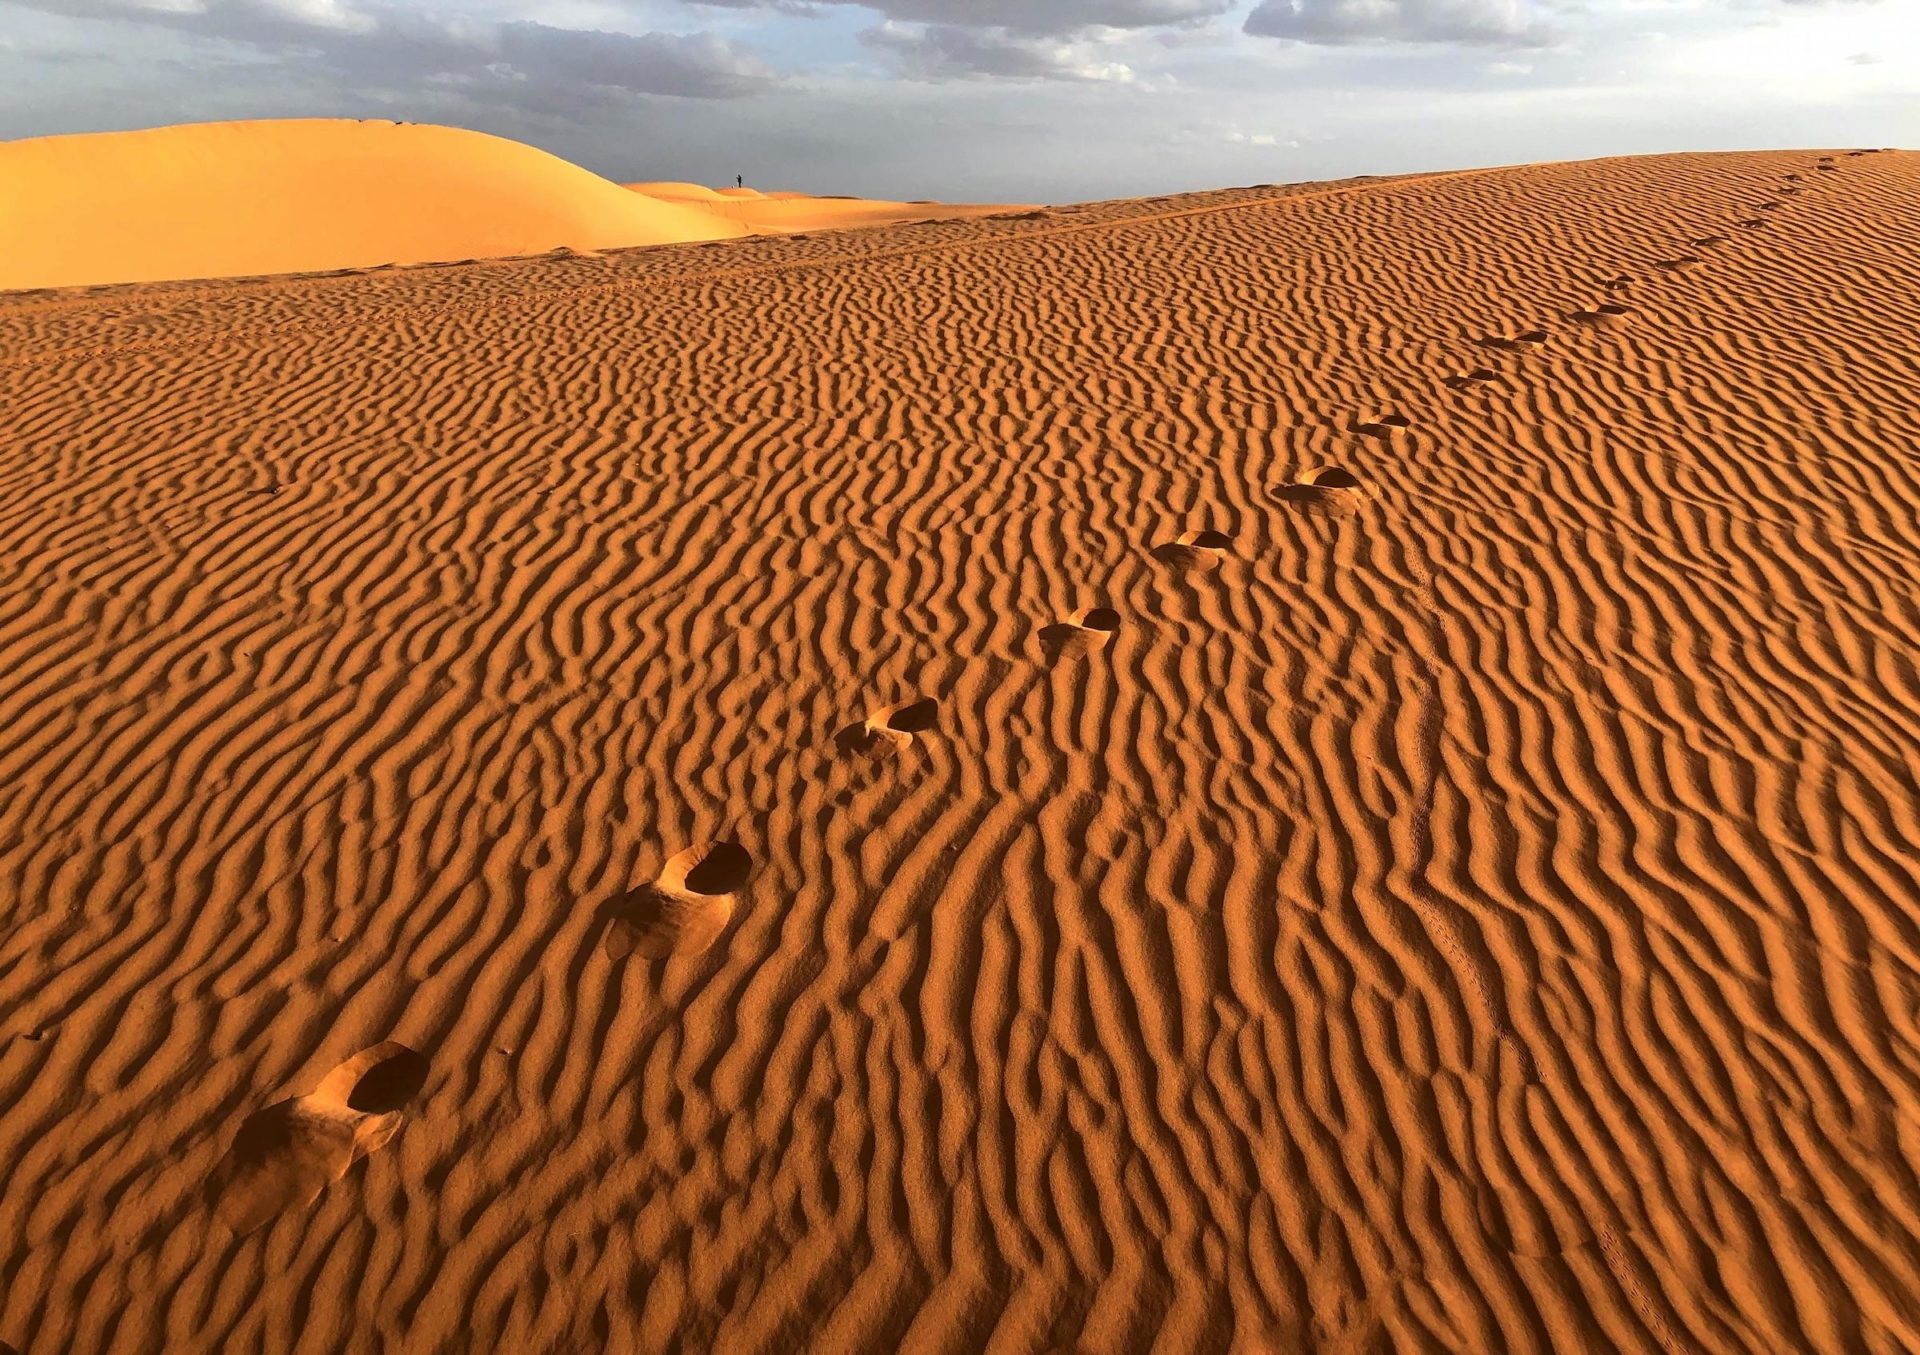 The Sahara Desert is hot, dry, and sandy AF.